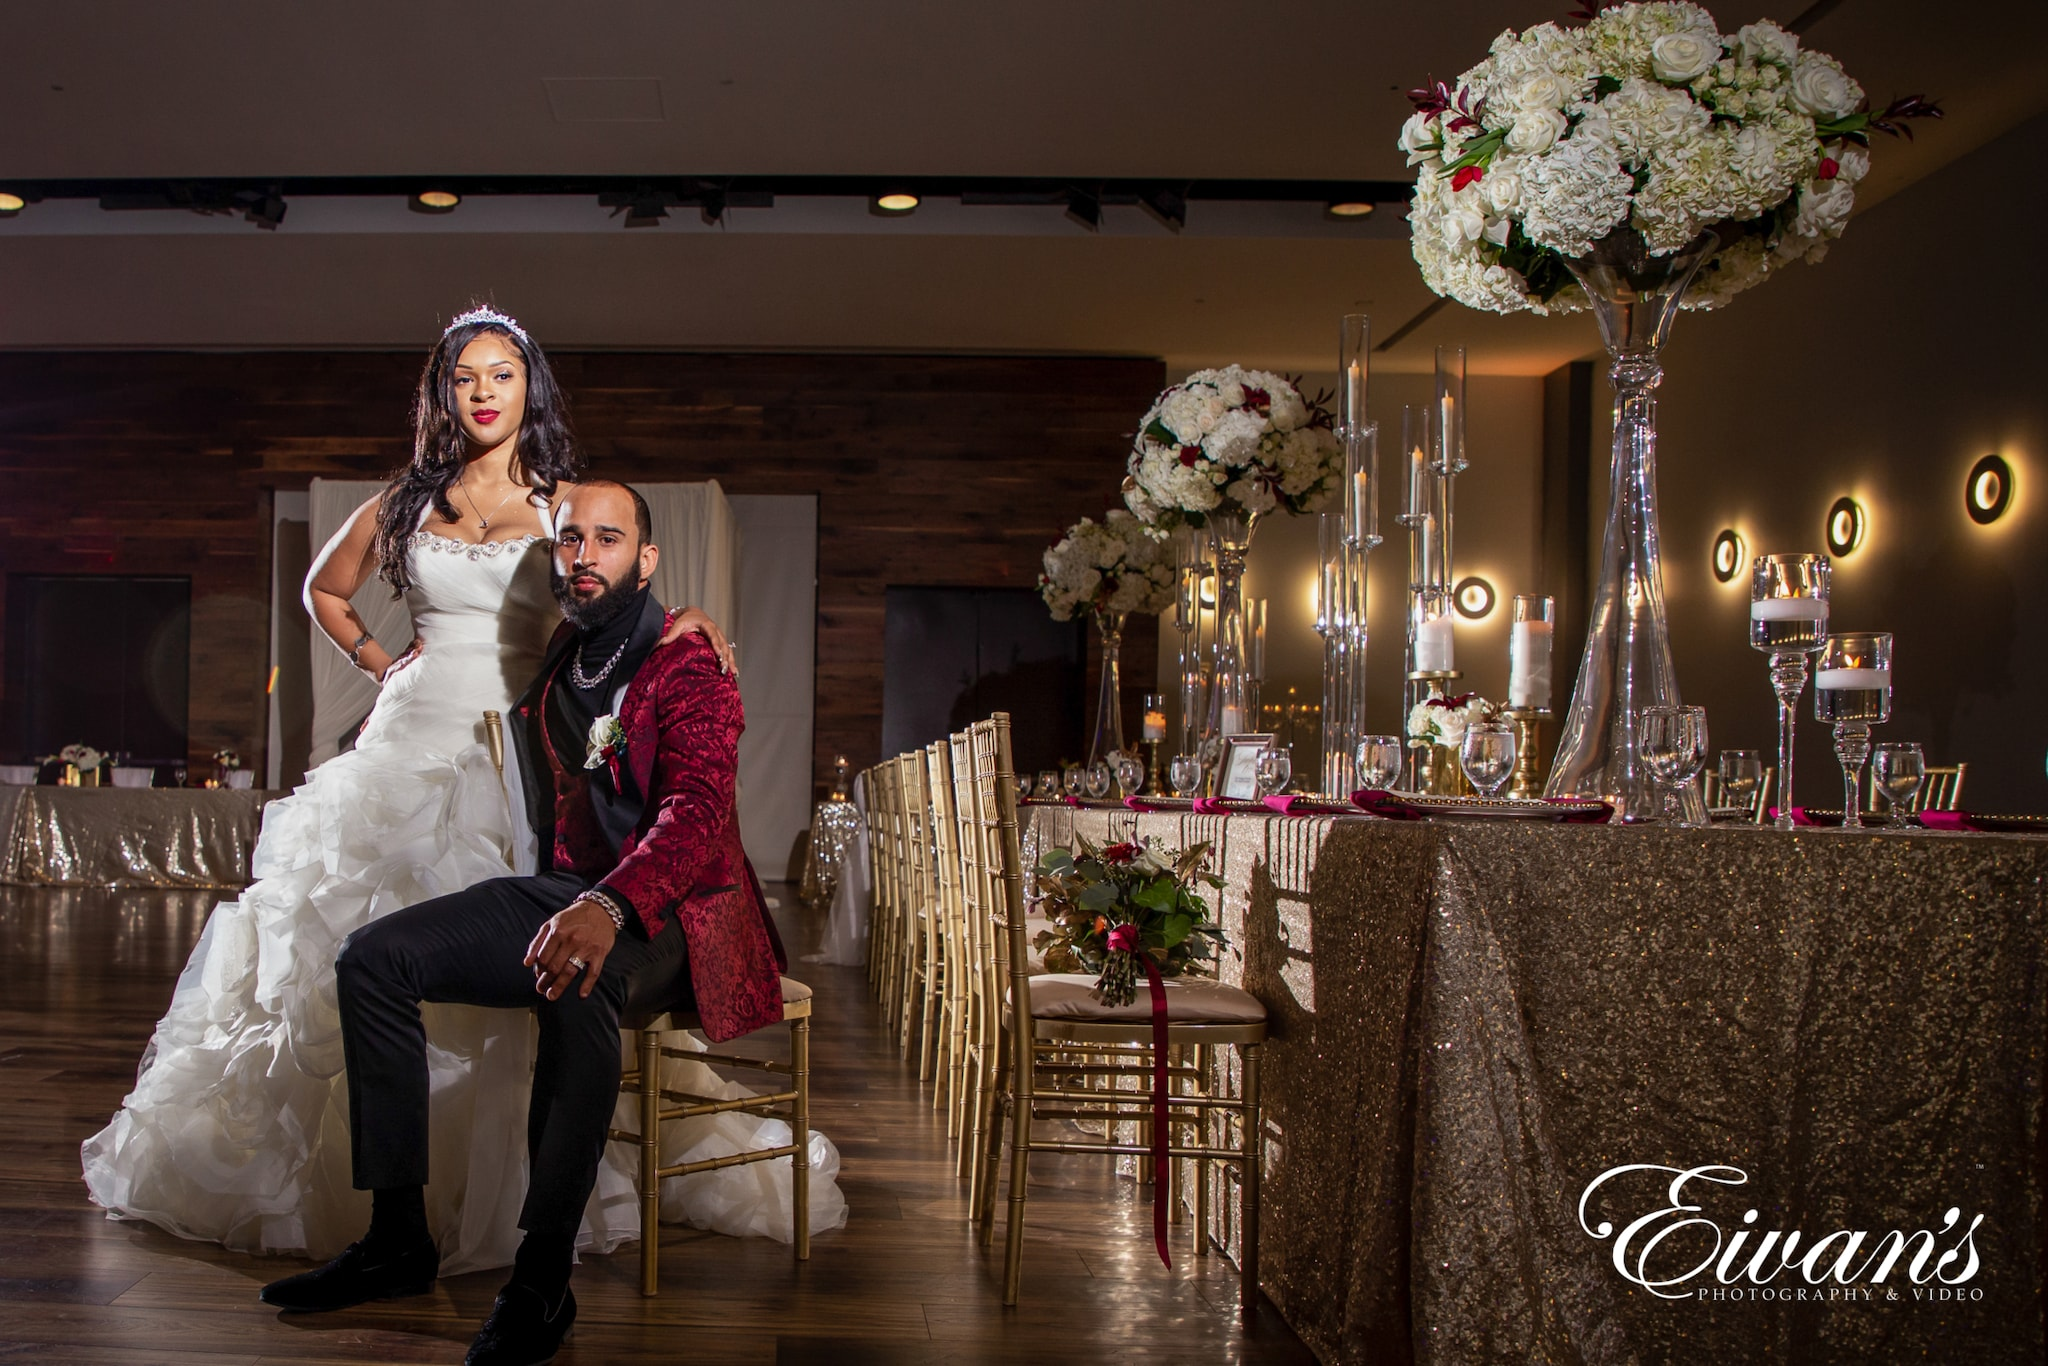 image of a married couple in their wedding venue